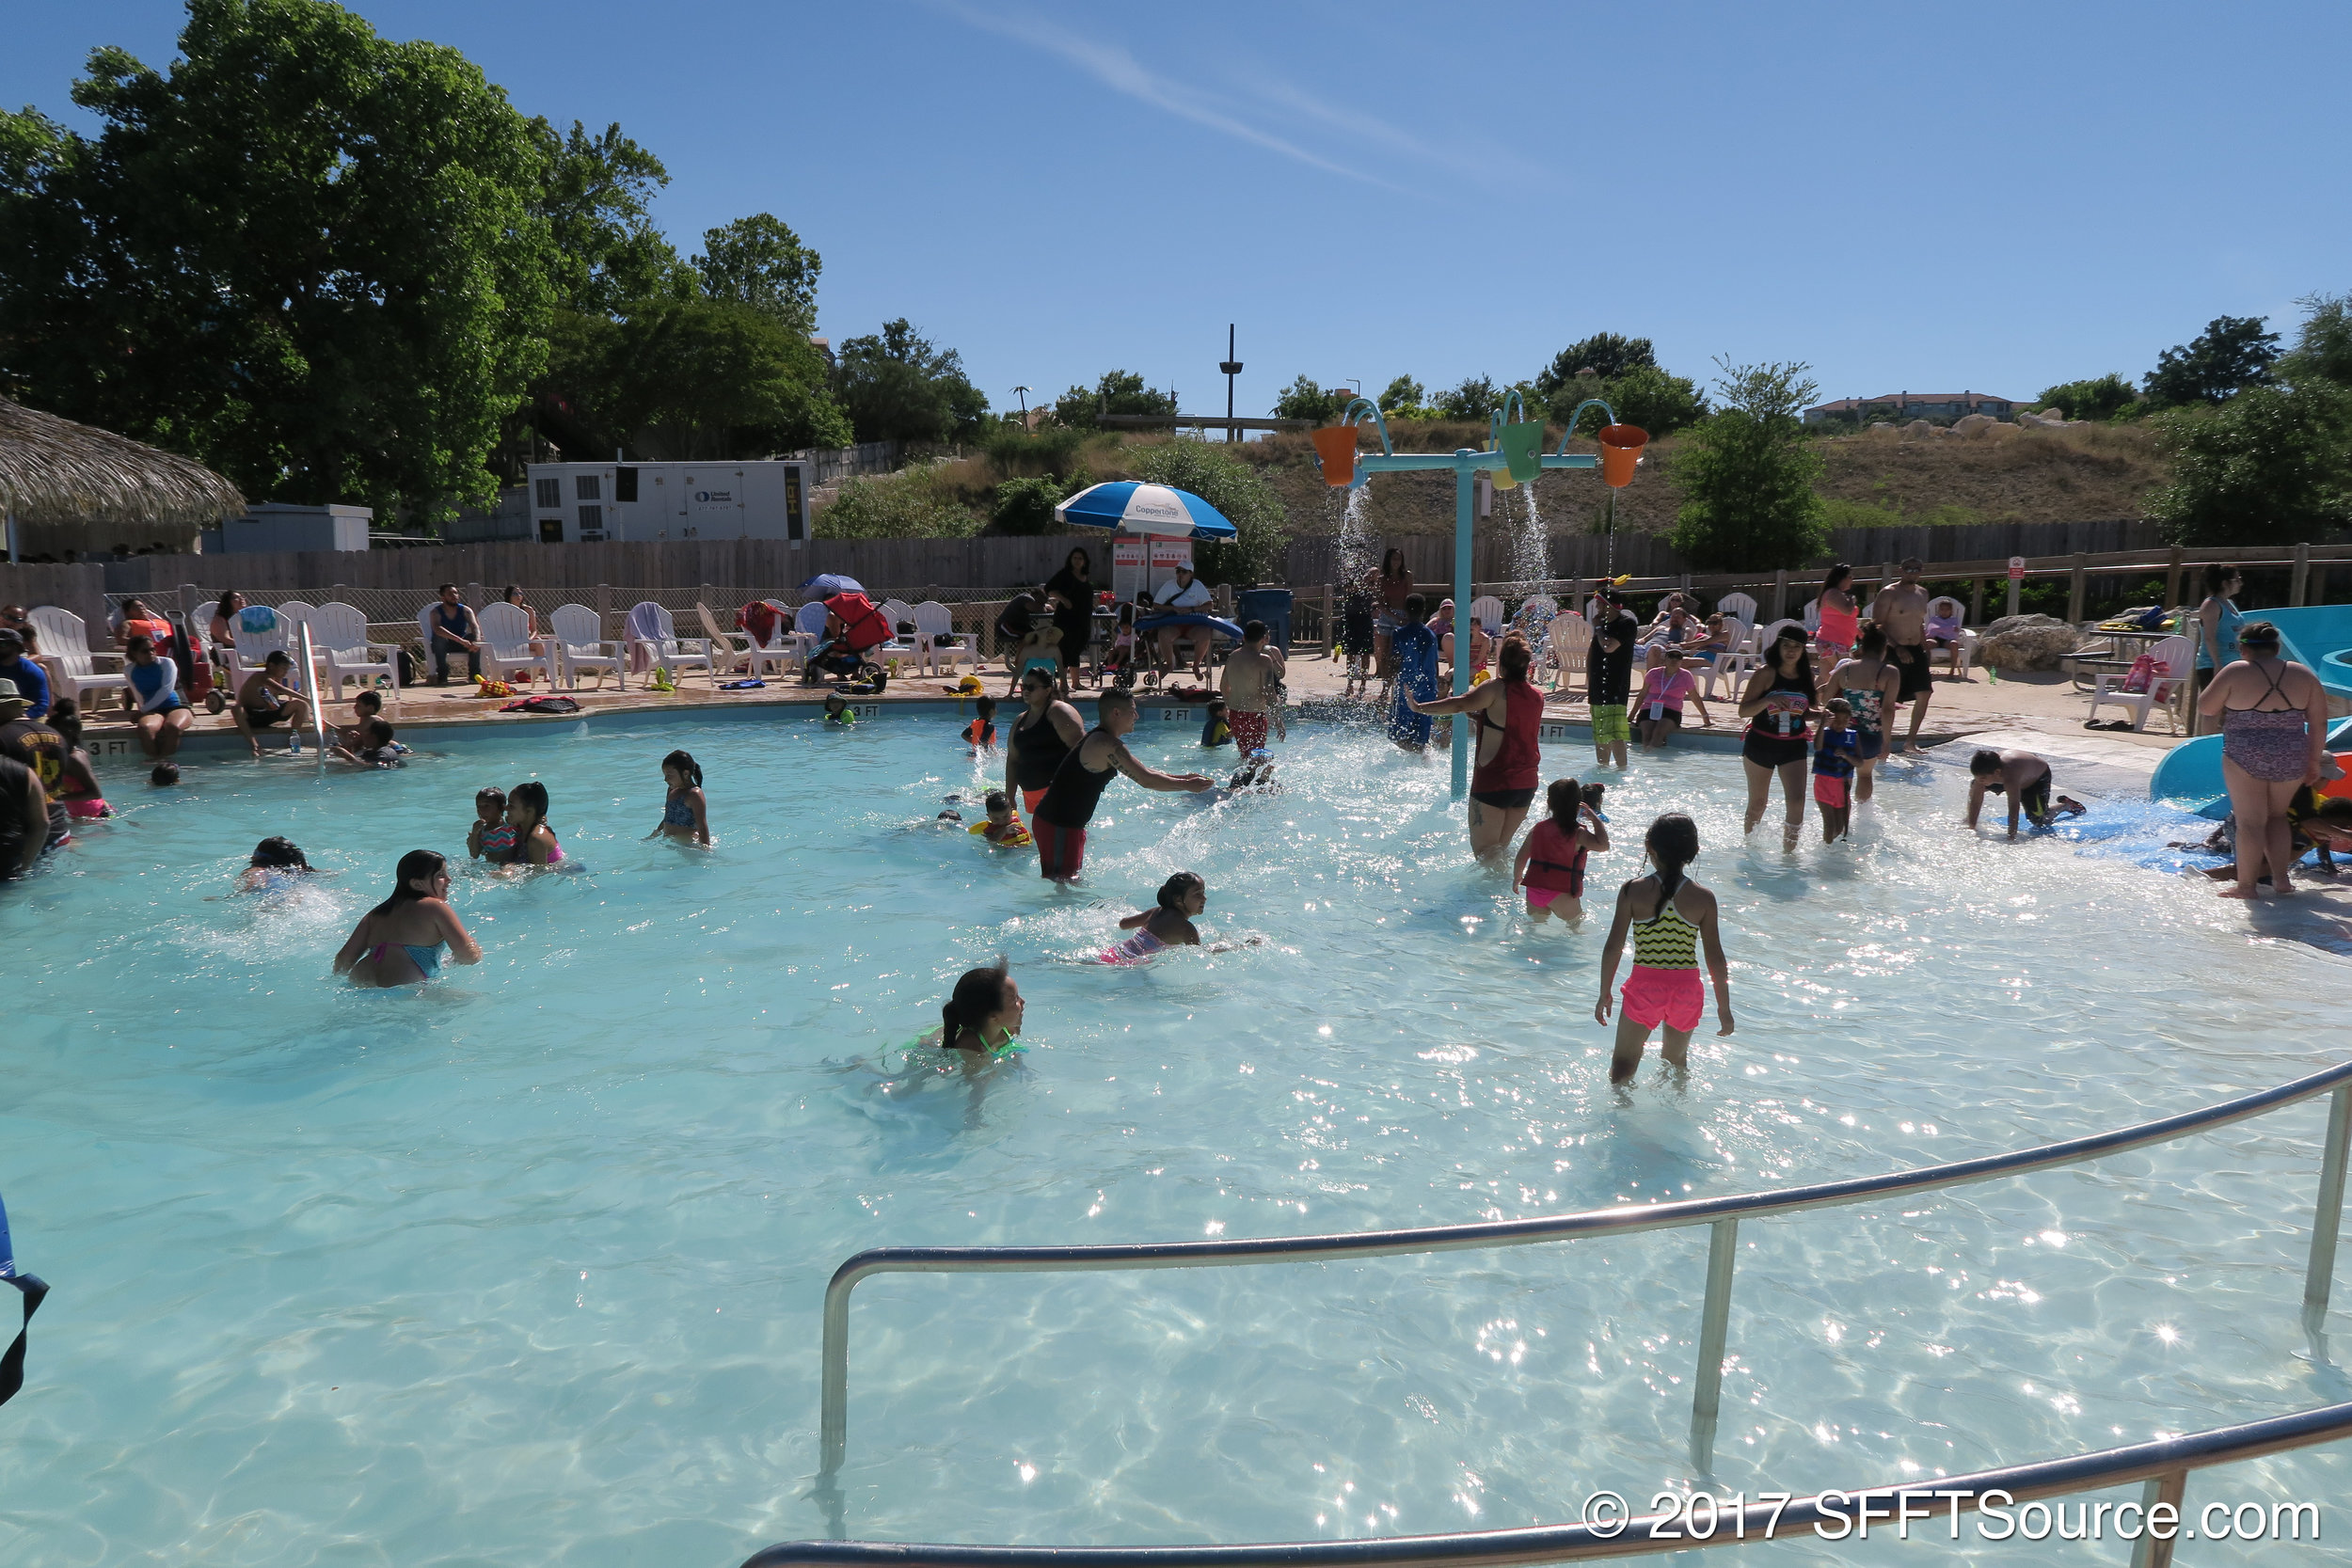 Paradise cove is a relaxation/play area pool.